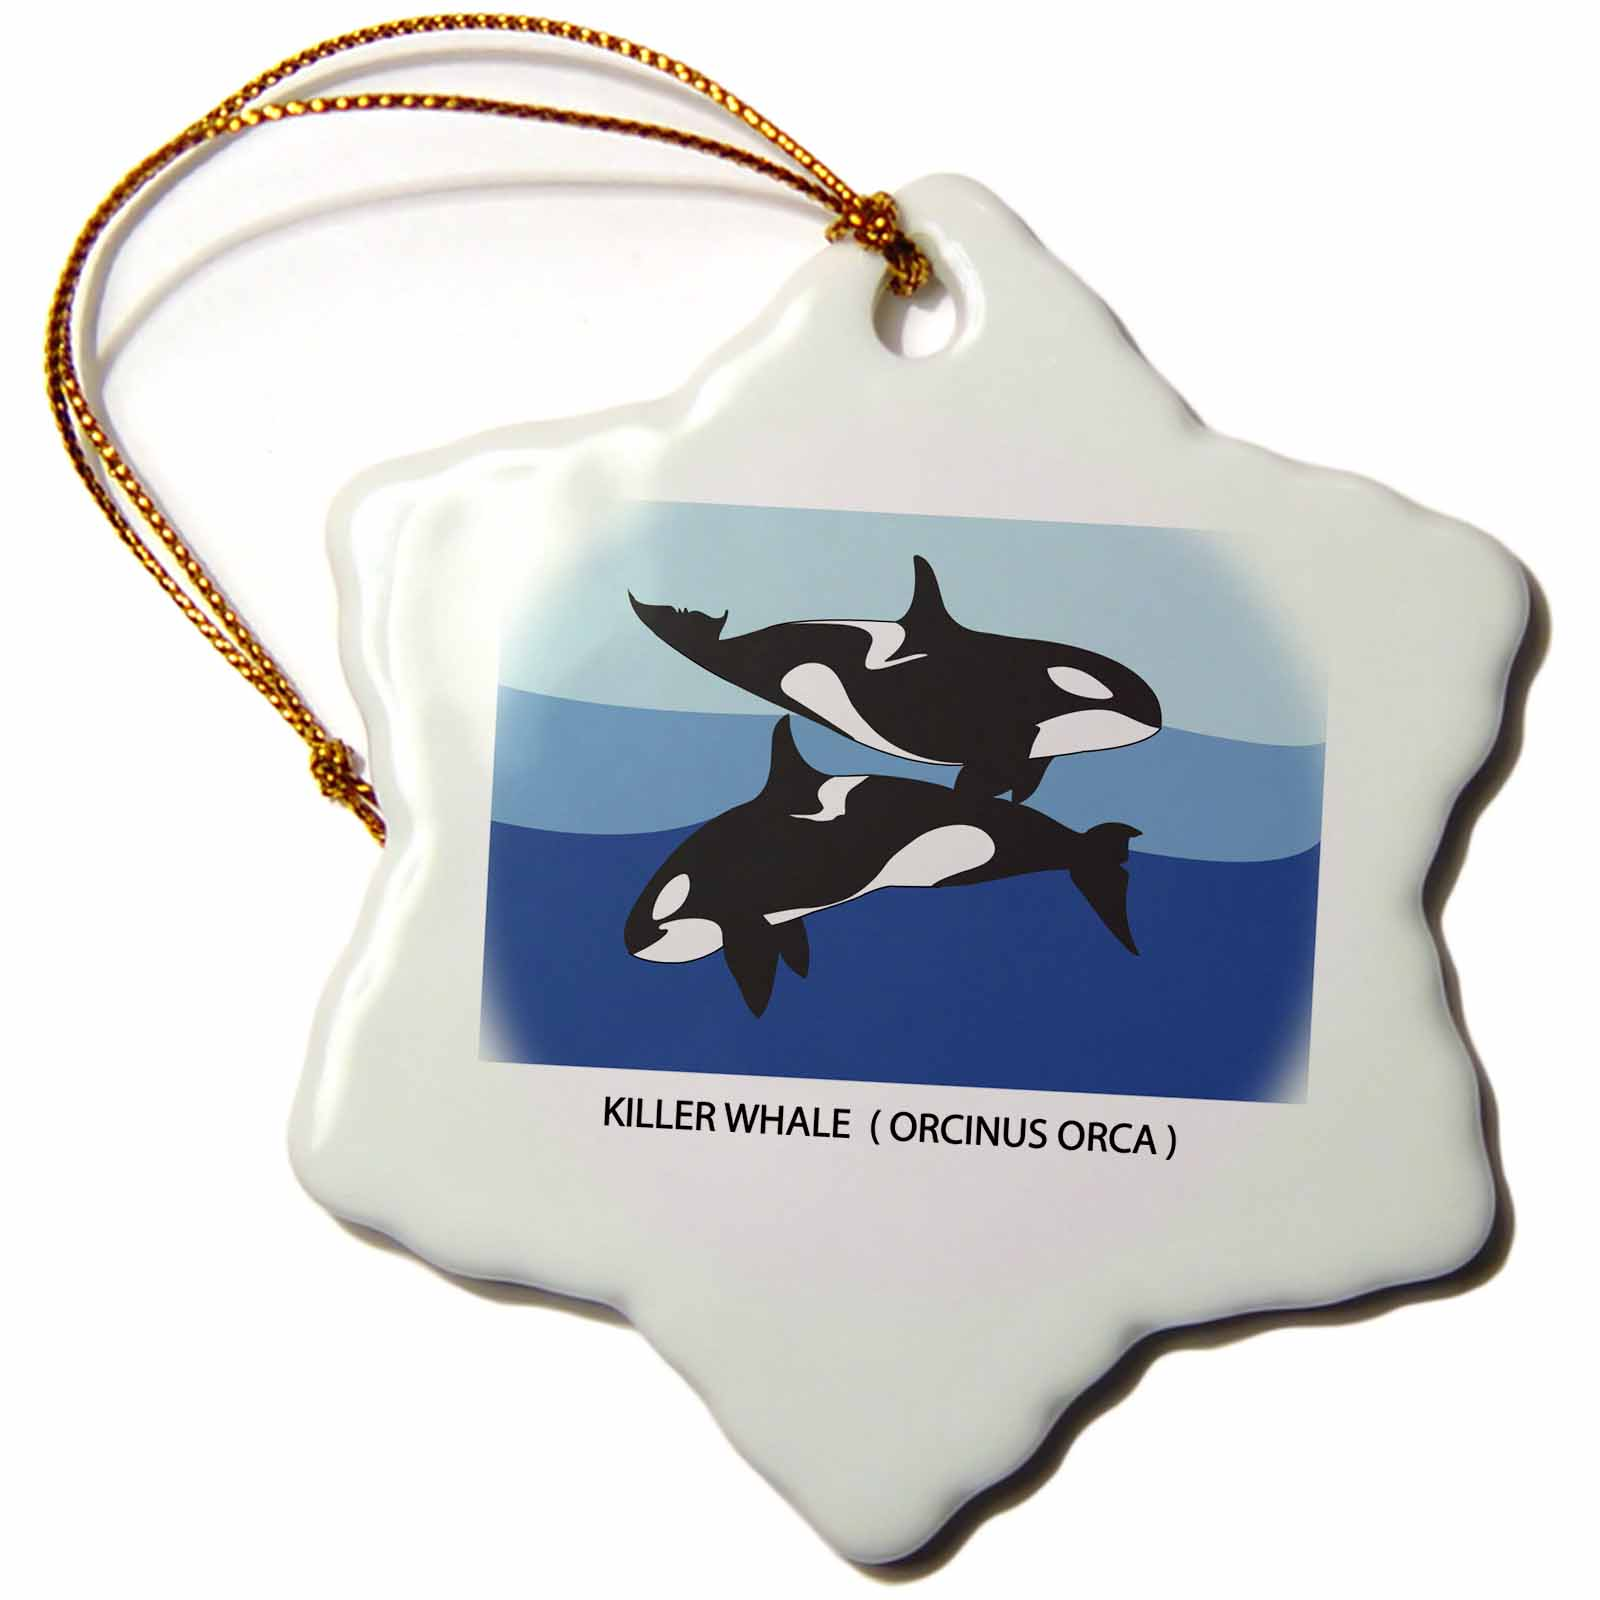 3dRose Two Killer Whales ( Orcinus Orca ) with caption, Snowflake Ornament, Porcelain, 3-inch